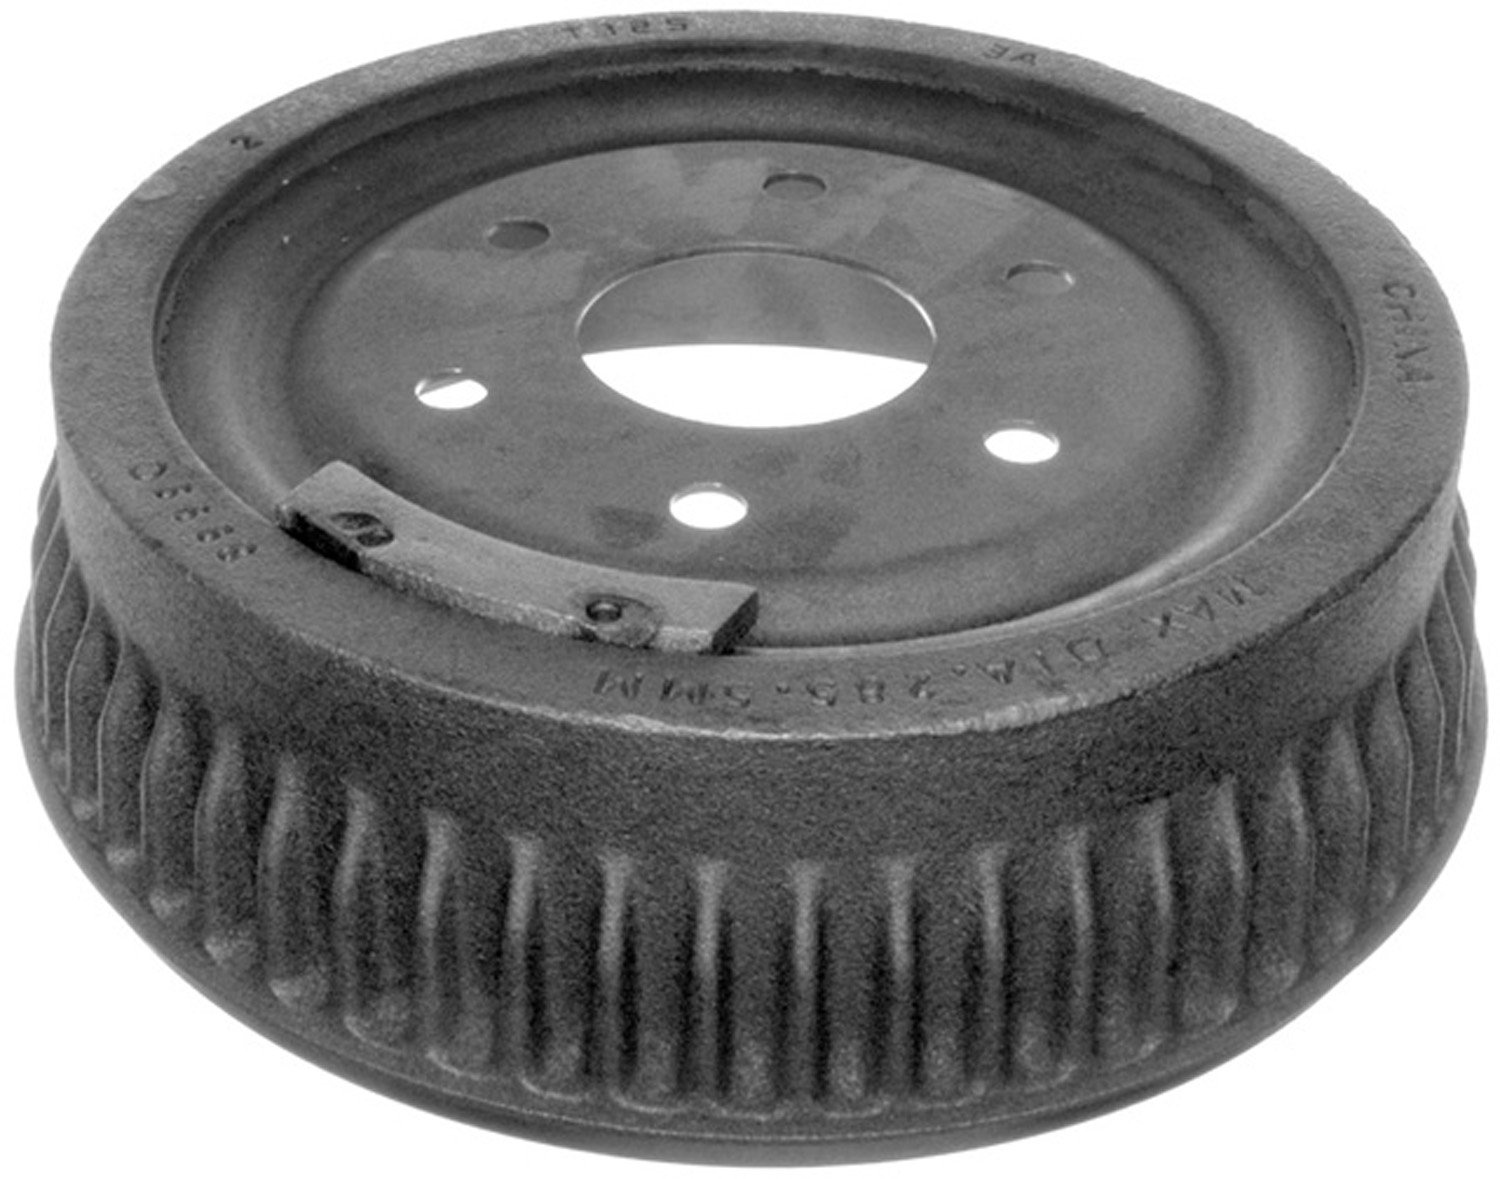 ACDelco 18B275 Professional Rear Brake Drum Assembly